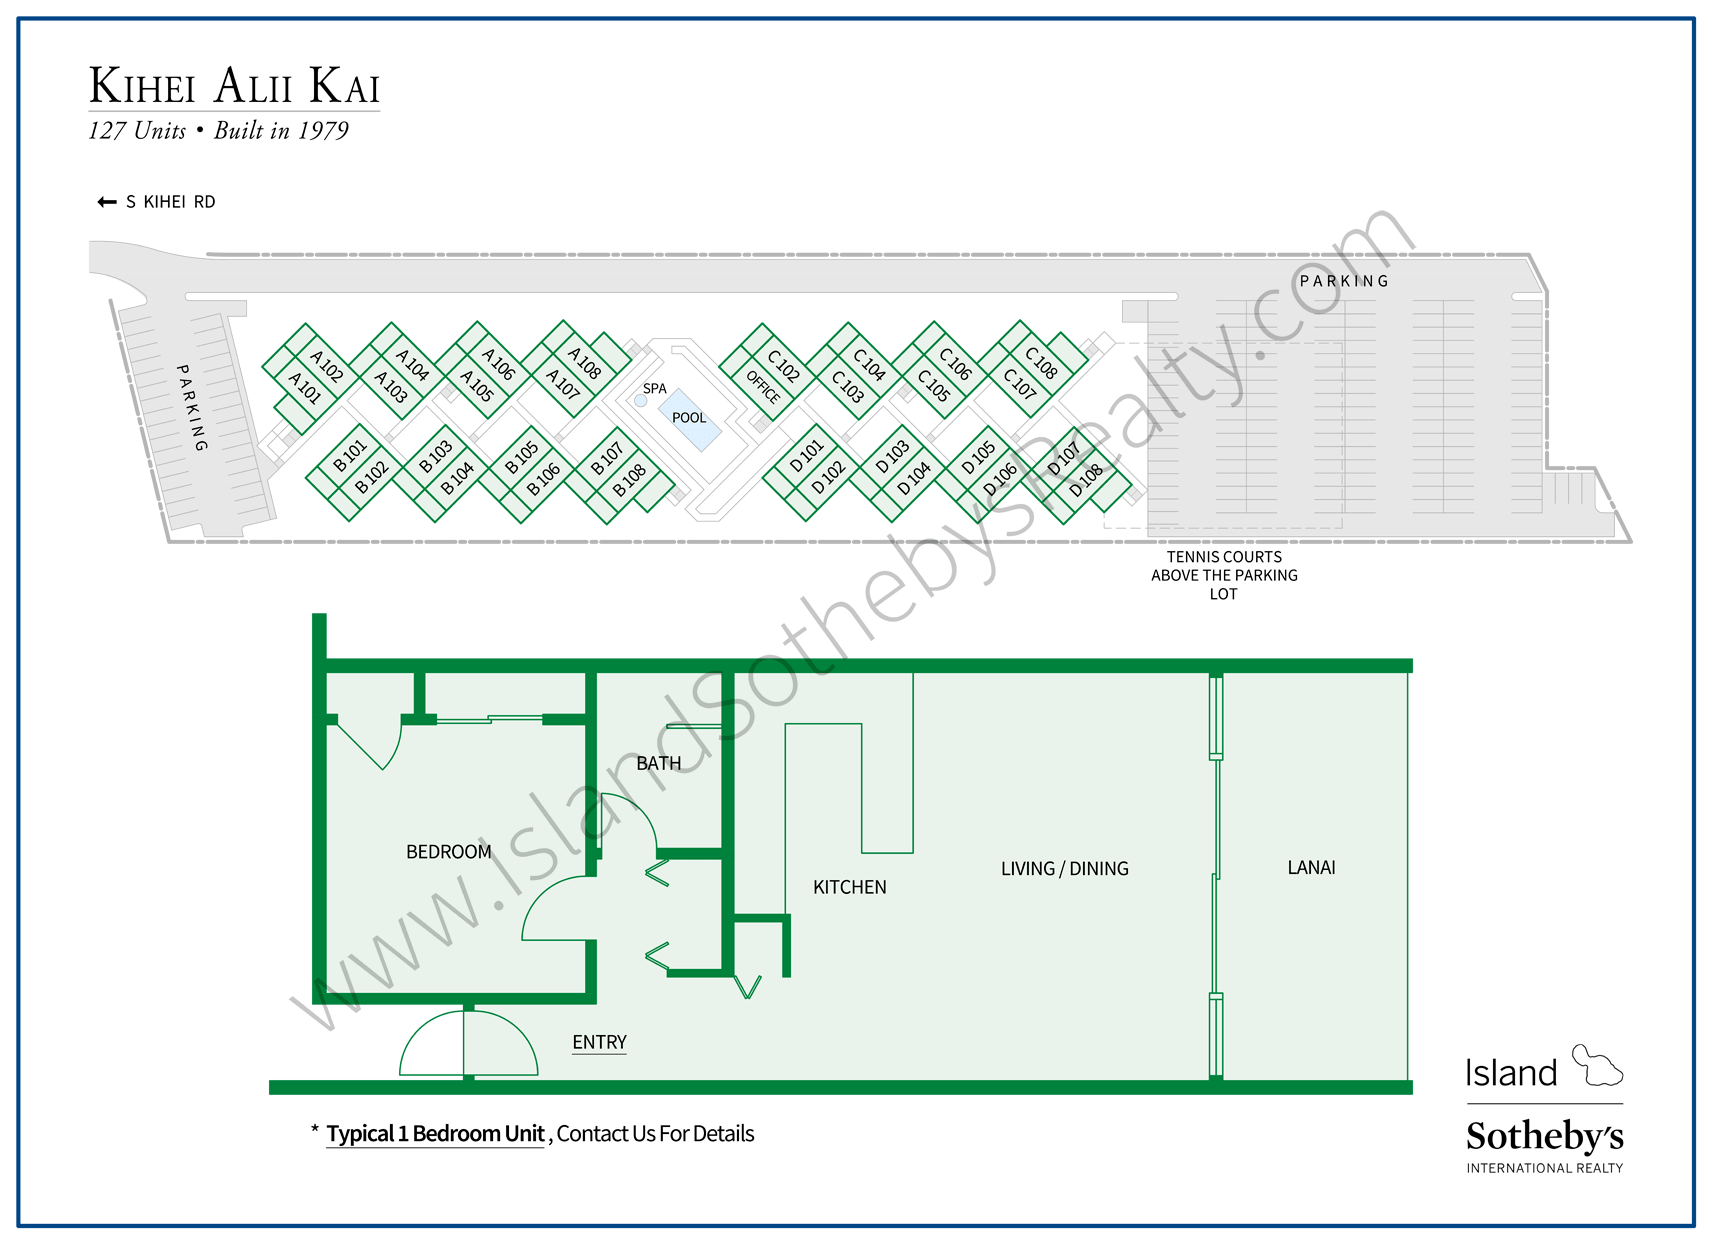 Map of Kihei Alii Kai Condominium Maui